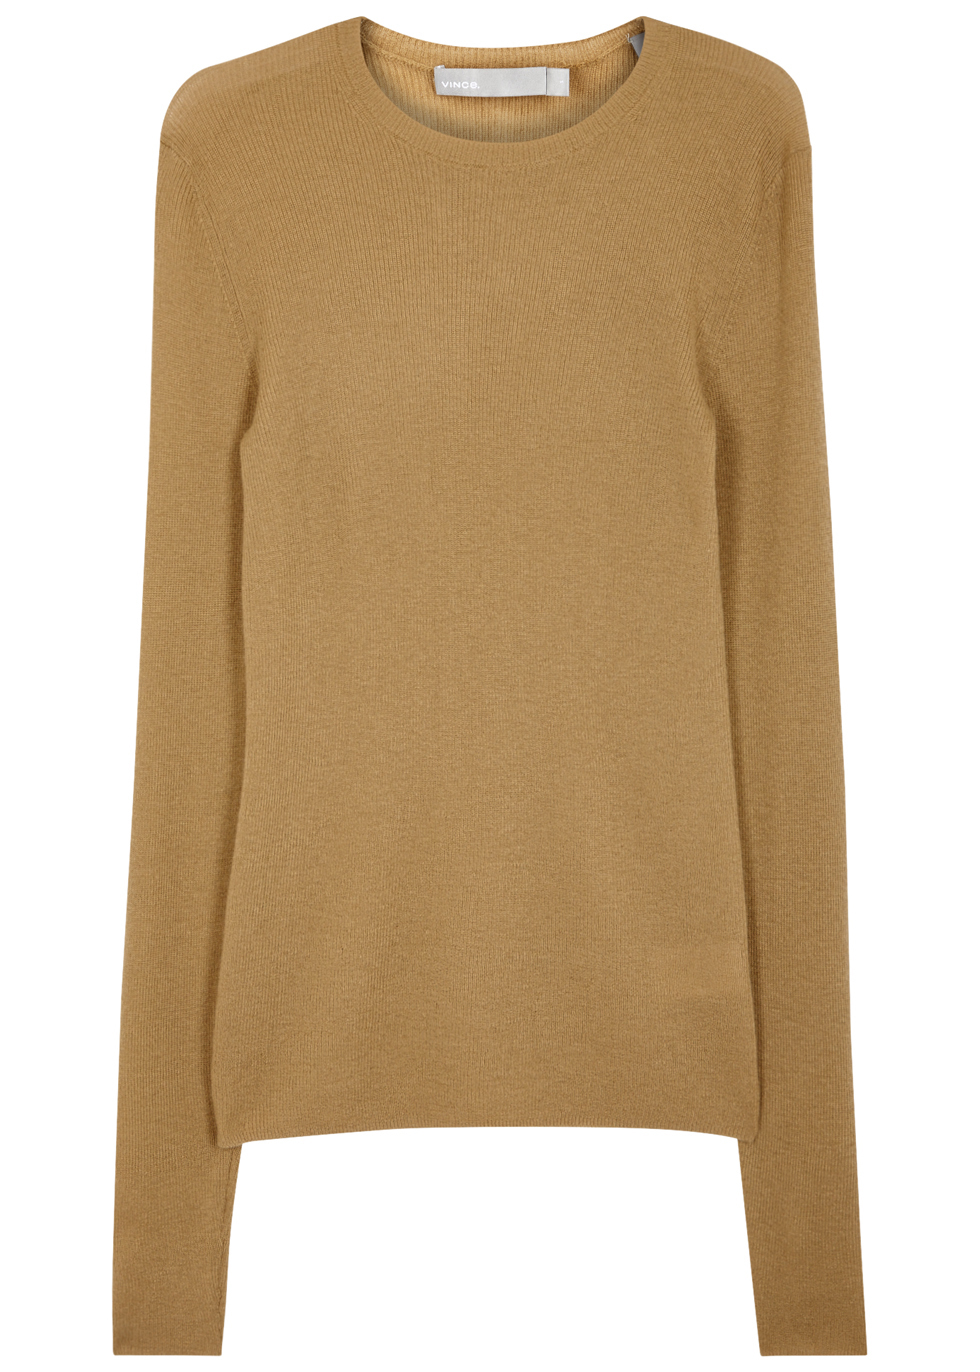 Camel Cashmere Jumper - pattern: plain; style: standard; predominant colour: camel; occasions: casual; length: standard; fit: standard fit; neckline: crew; fibres: cashmere - 100%; sleeve length: long sleeve; sleeve style: standard; texture group: knits/crochet; pattern type: knitted - fine stitch; wardrobe: investment; season: a/w 2016